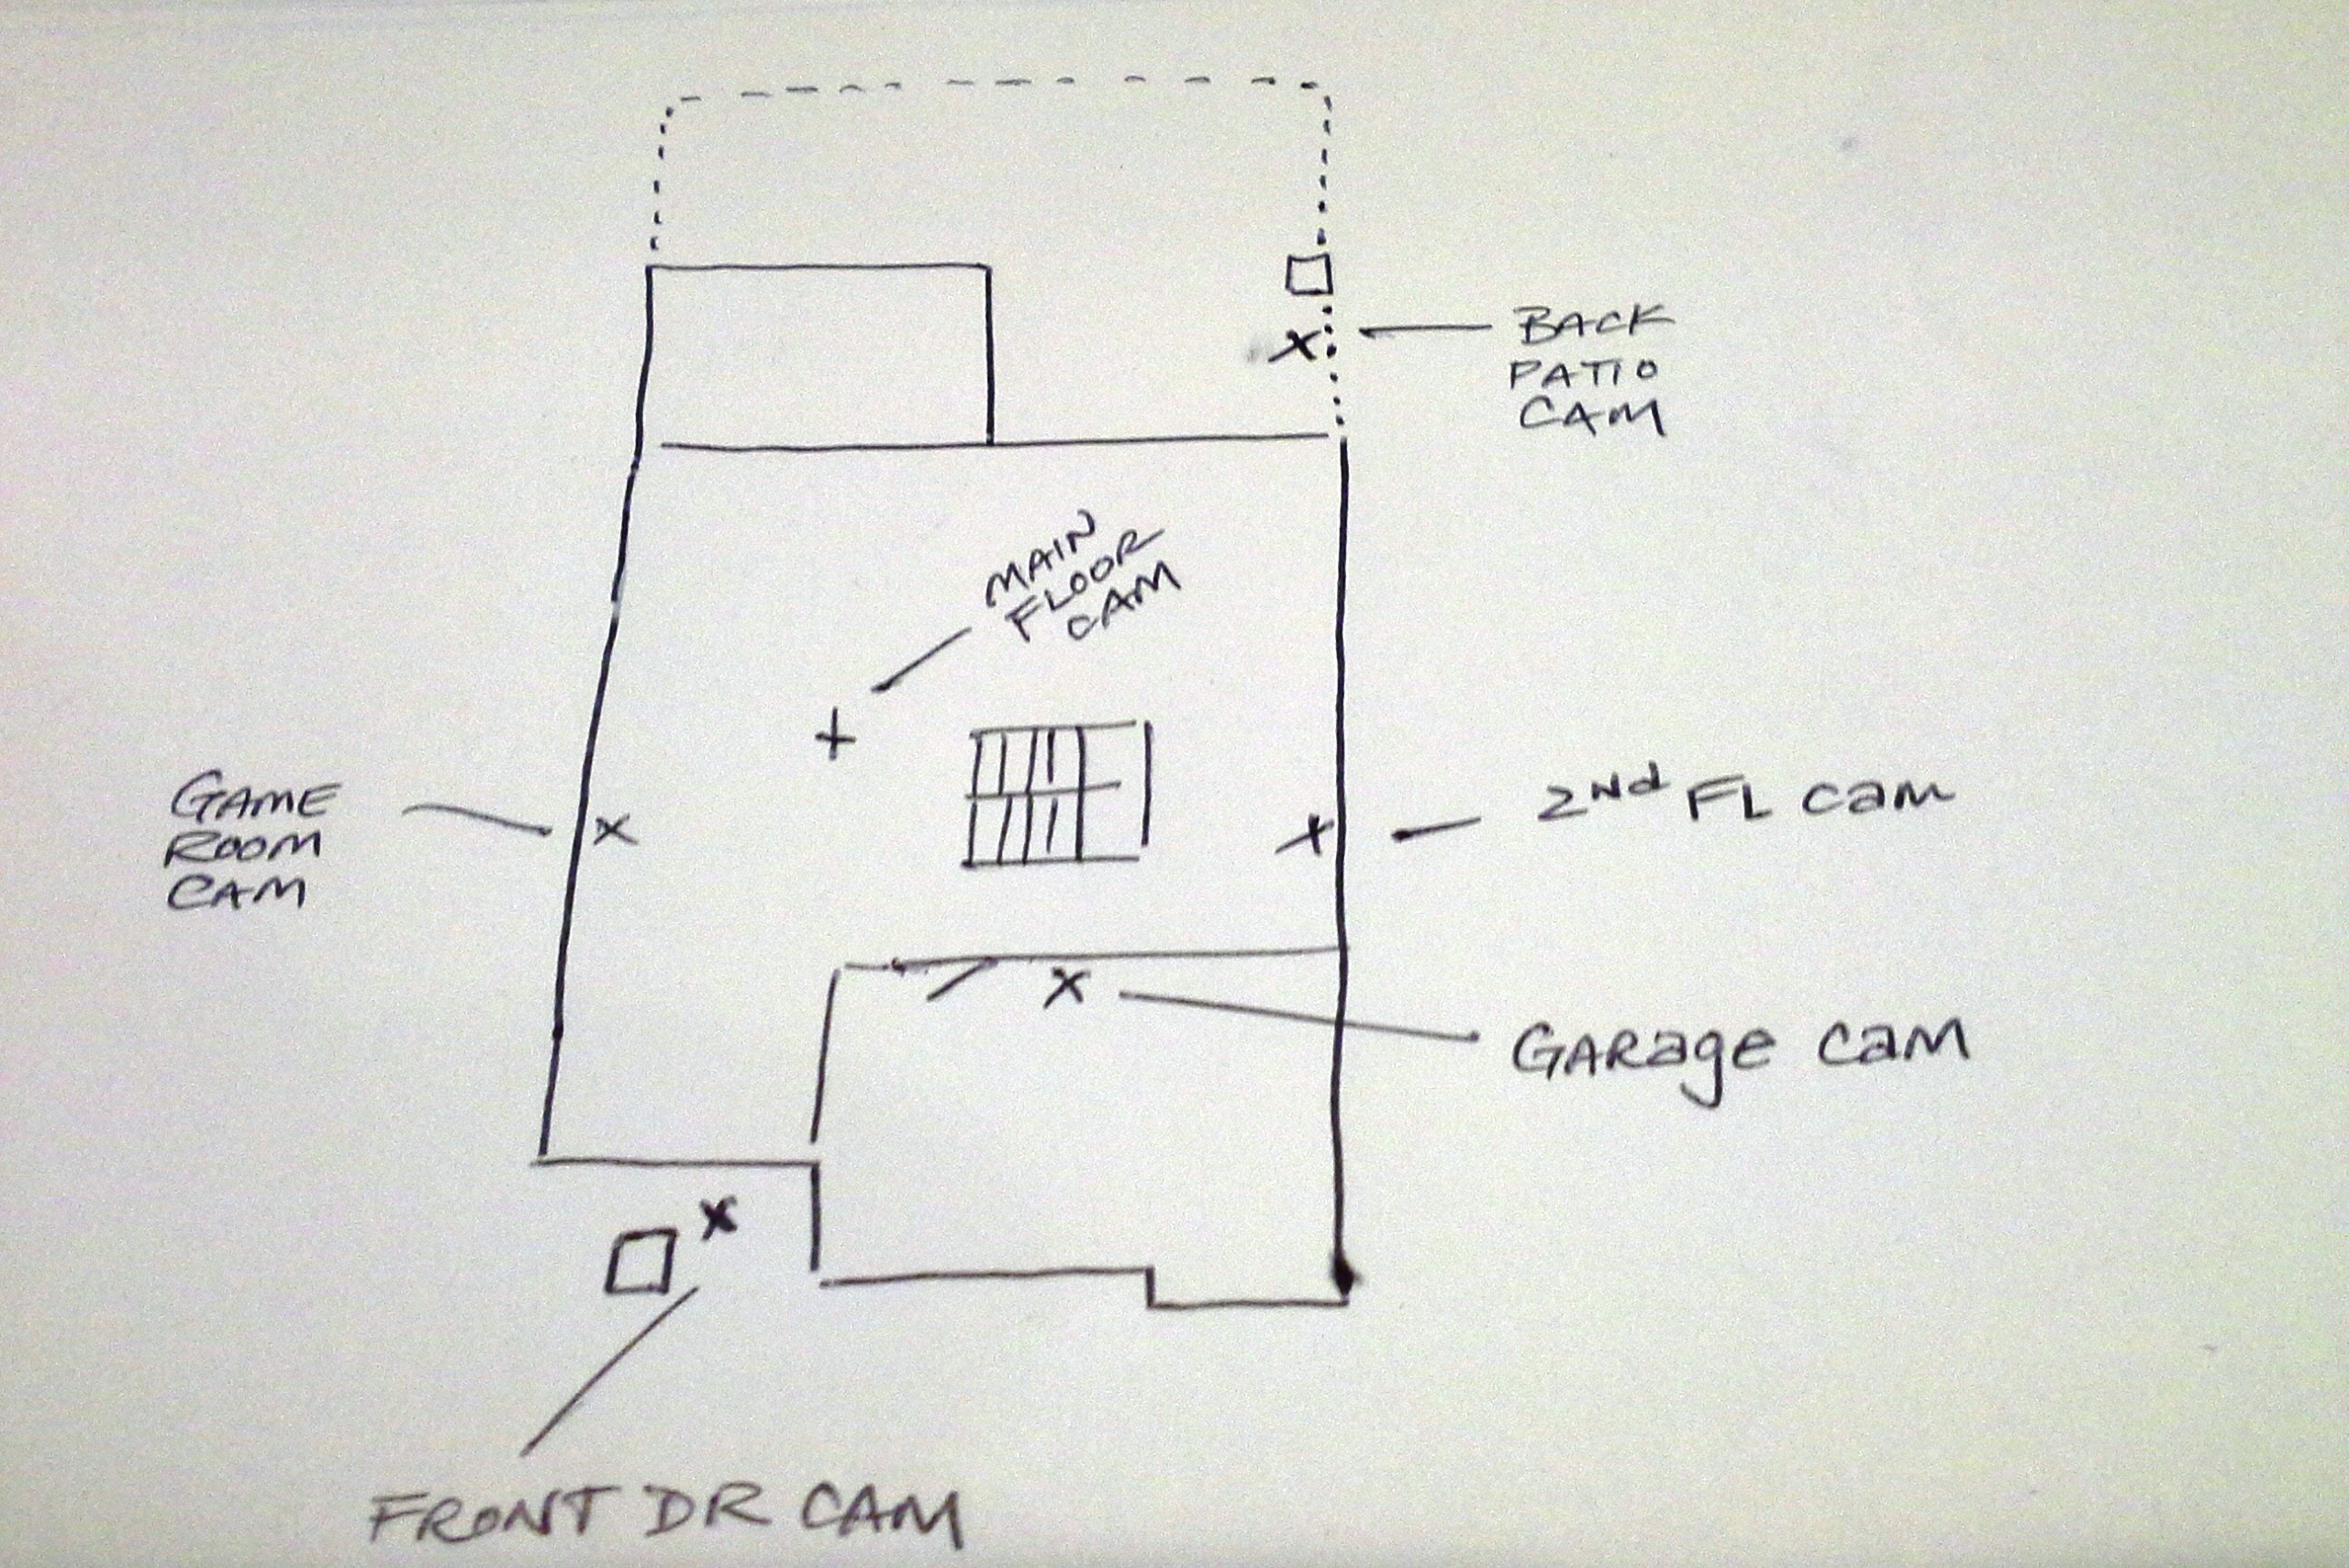 Security Cameras Wireing Diagram Layout Trusted Wiring Home Camera Electrical Work U2022 Ford Diagrams